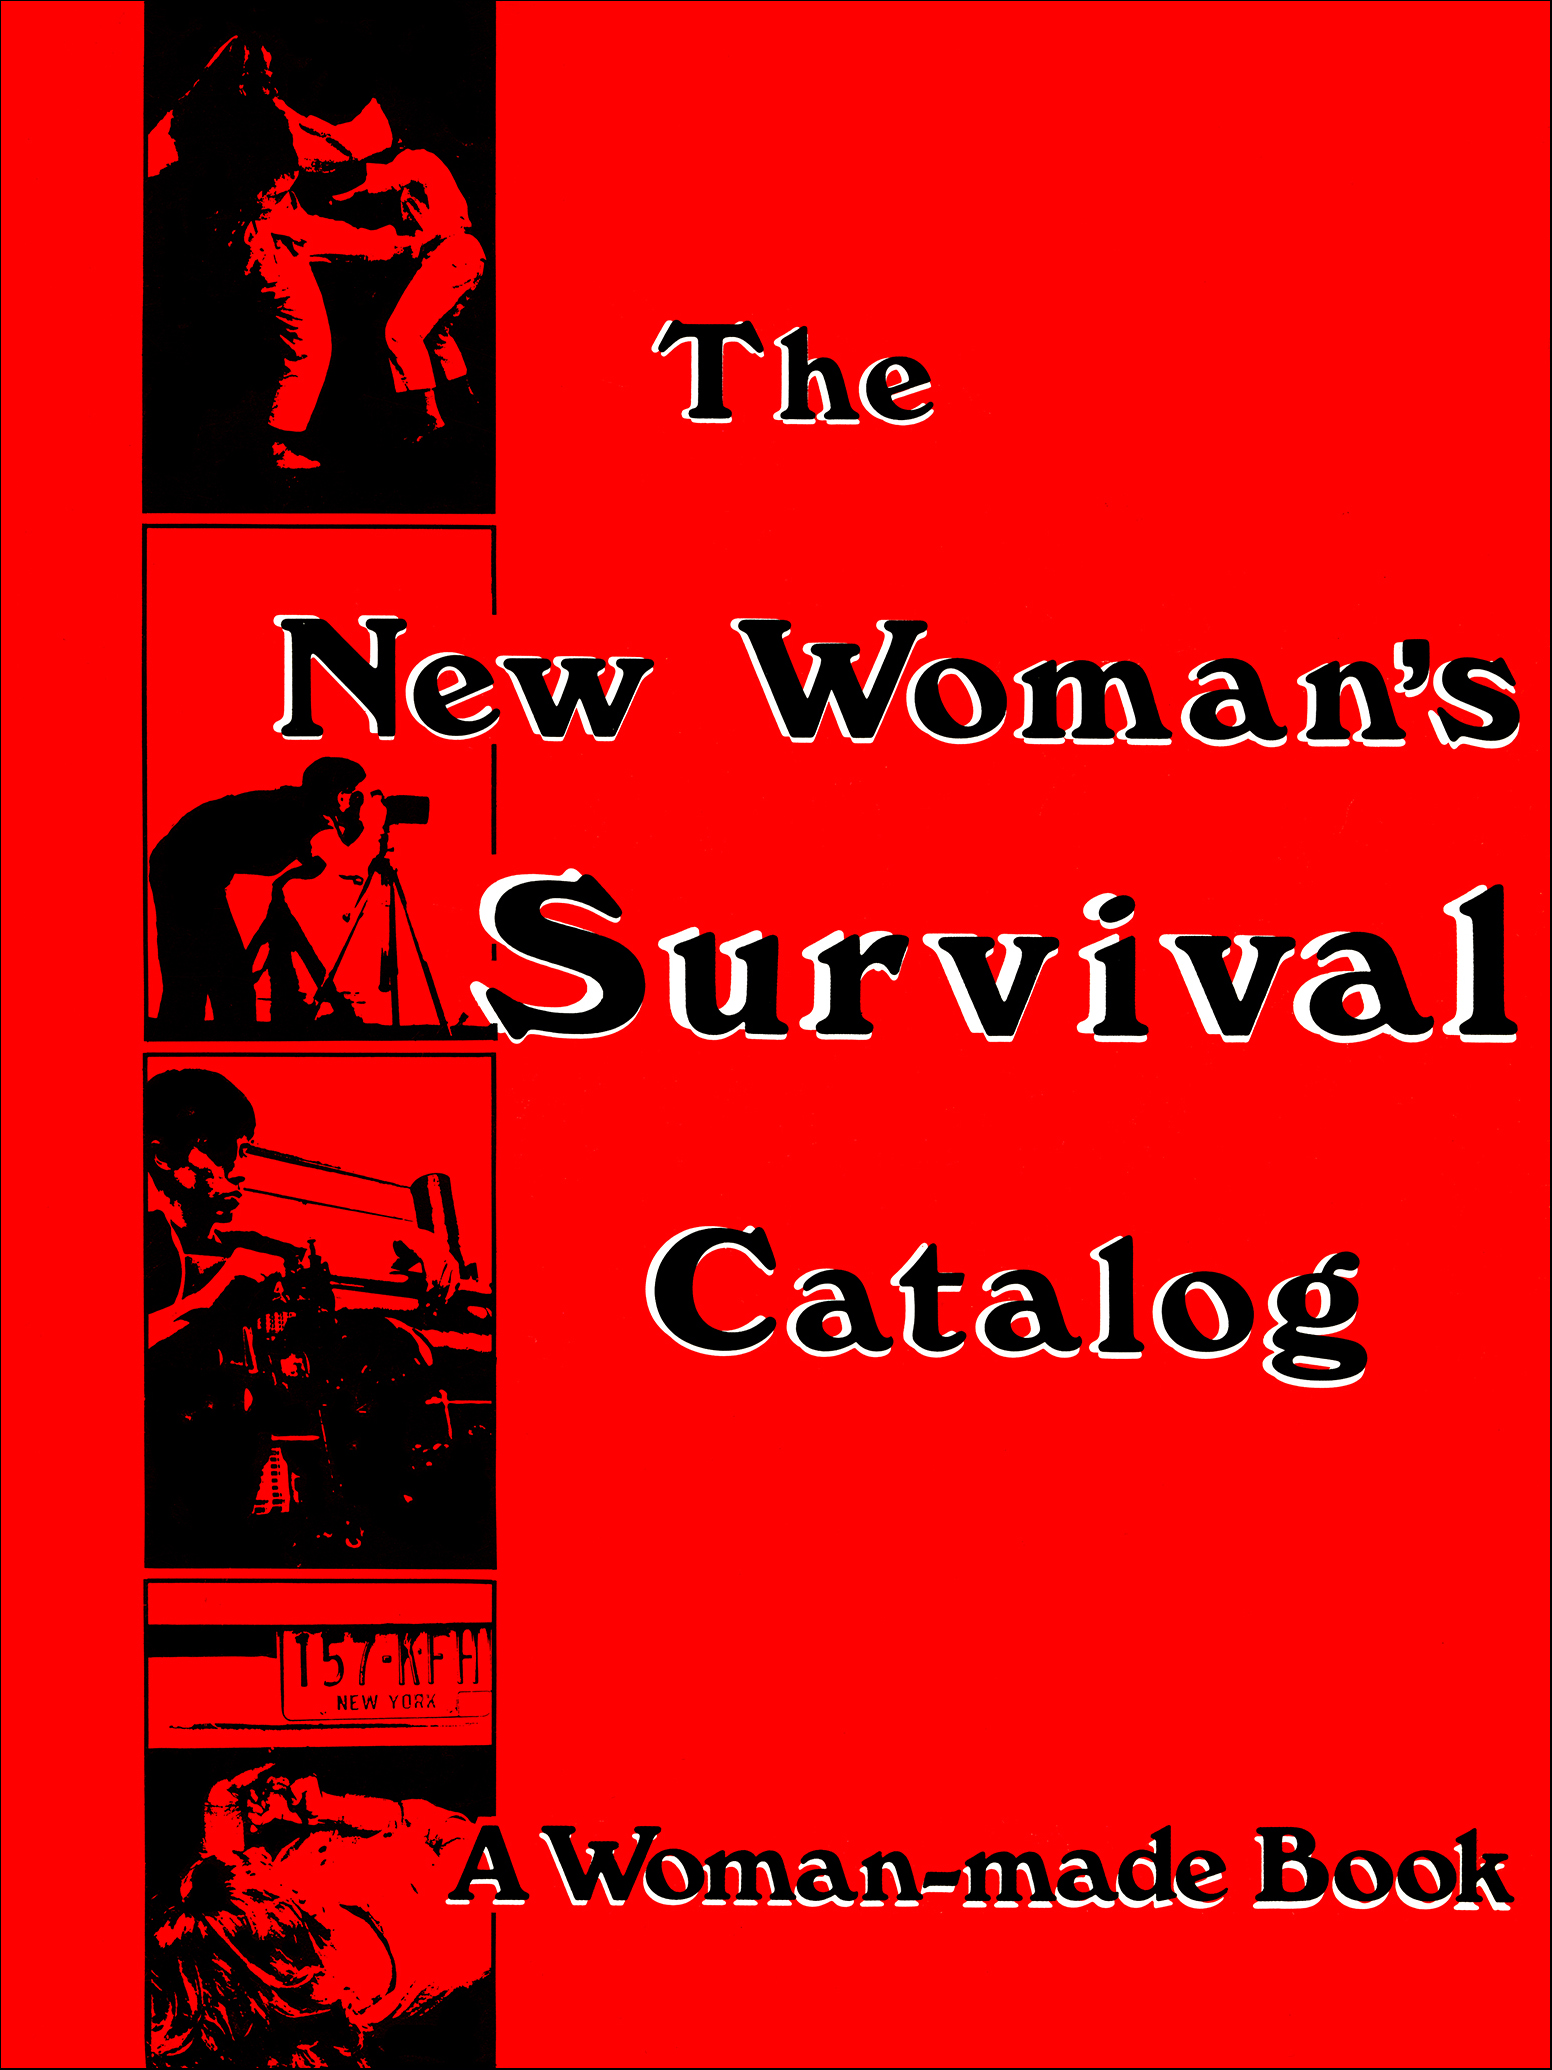 GRIMSTAD, Kirsten; RENNIE, Susan (eds.) - The New Woman's Survival Catalog